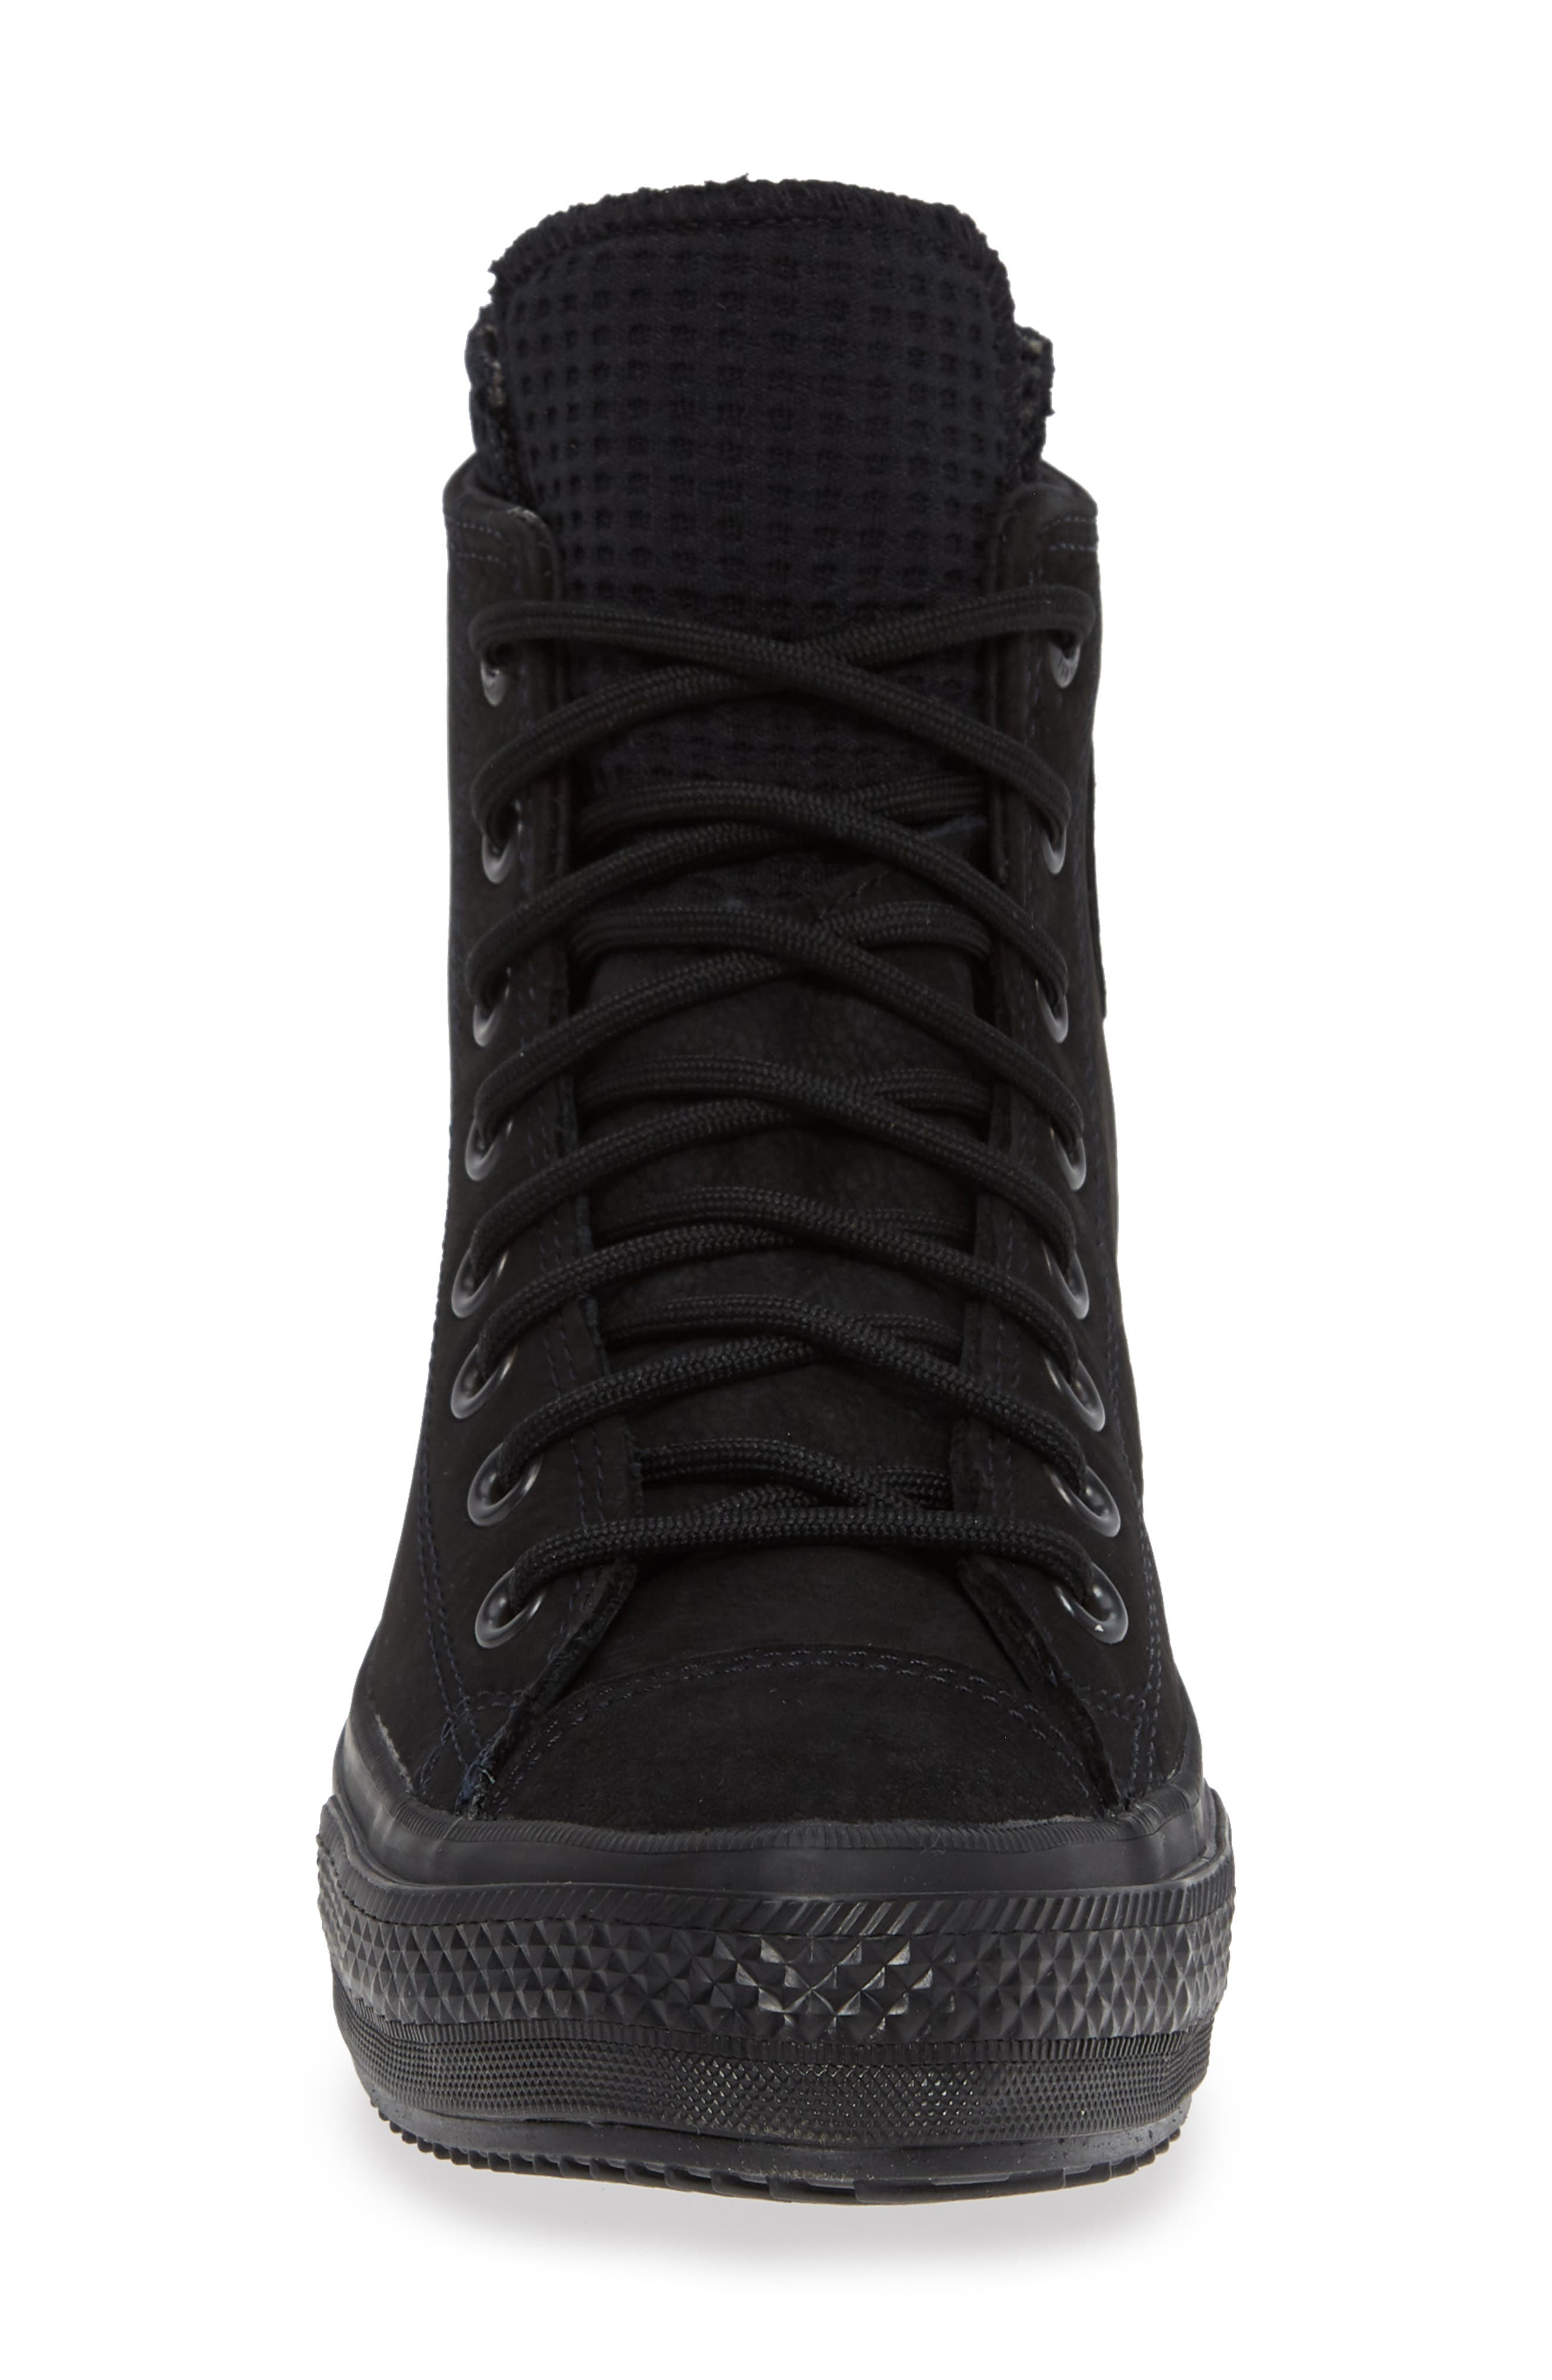 Chuck Taylor<sup>®</sup> All Star<sup>®</sup> Counter Climate Waterproof Sneaker,                             Alternate thumbnail 2, color,                             001